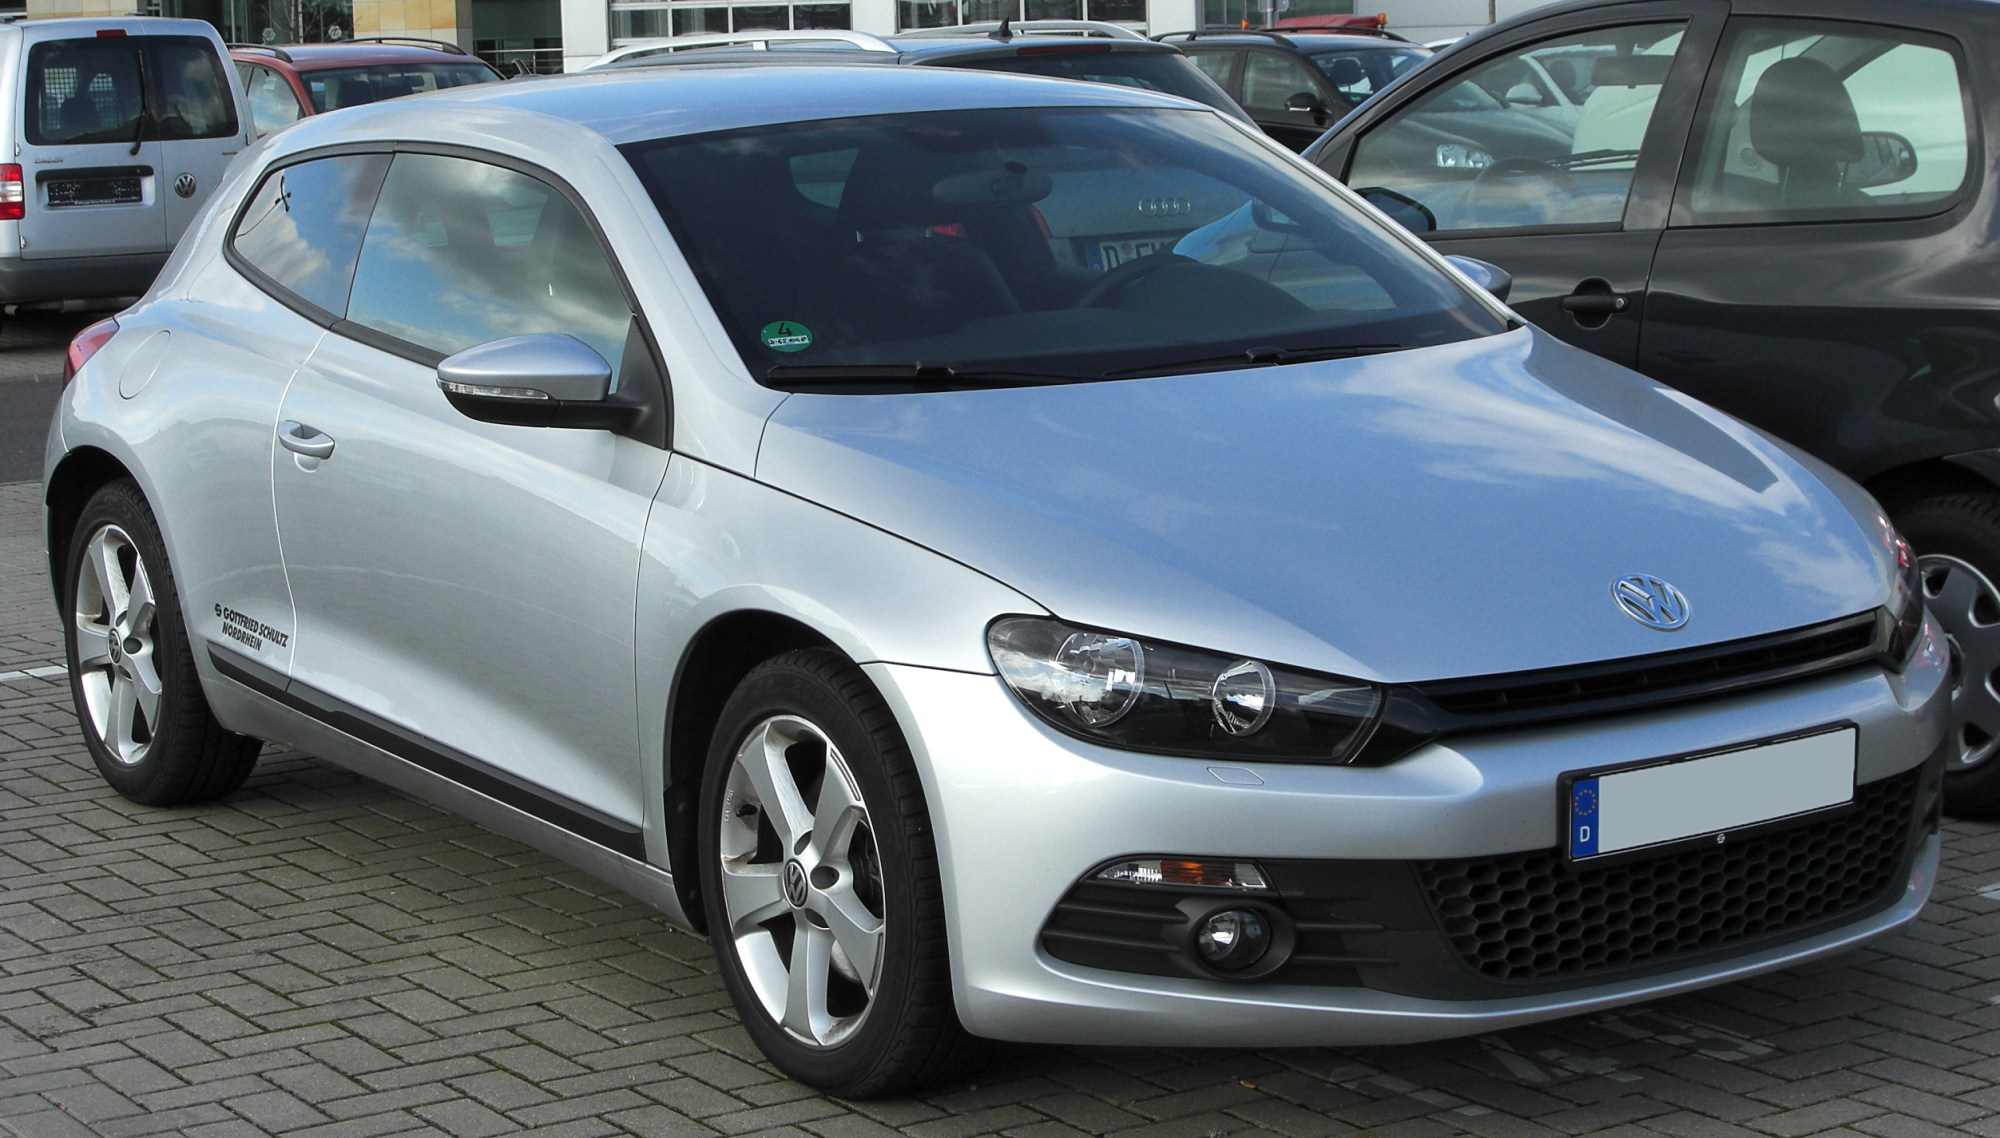 hight resolution of volkswagen scirocco volkswagen scirocco wikipedia volkswagen scirocco 2007 golf gti fuse box